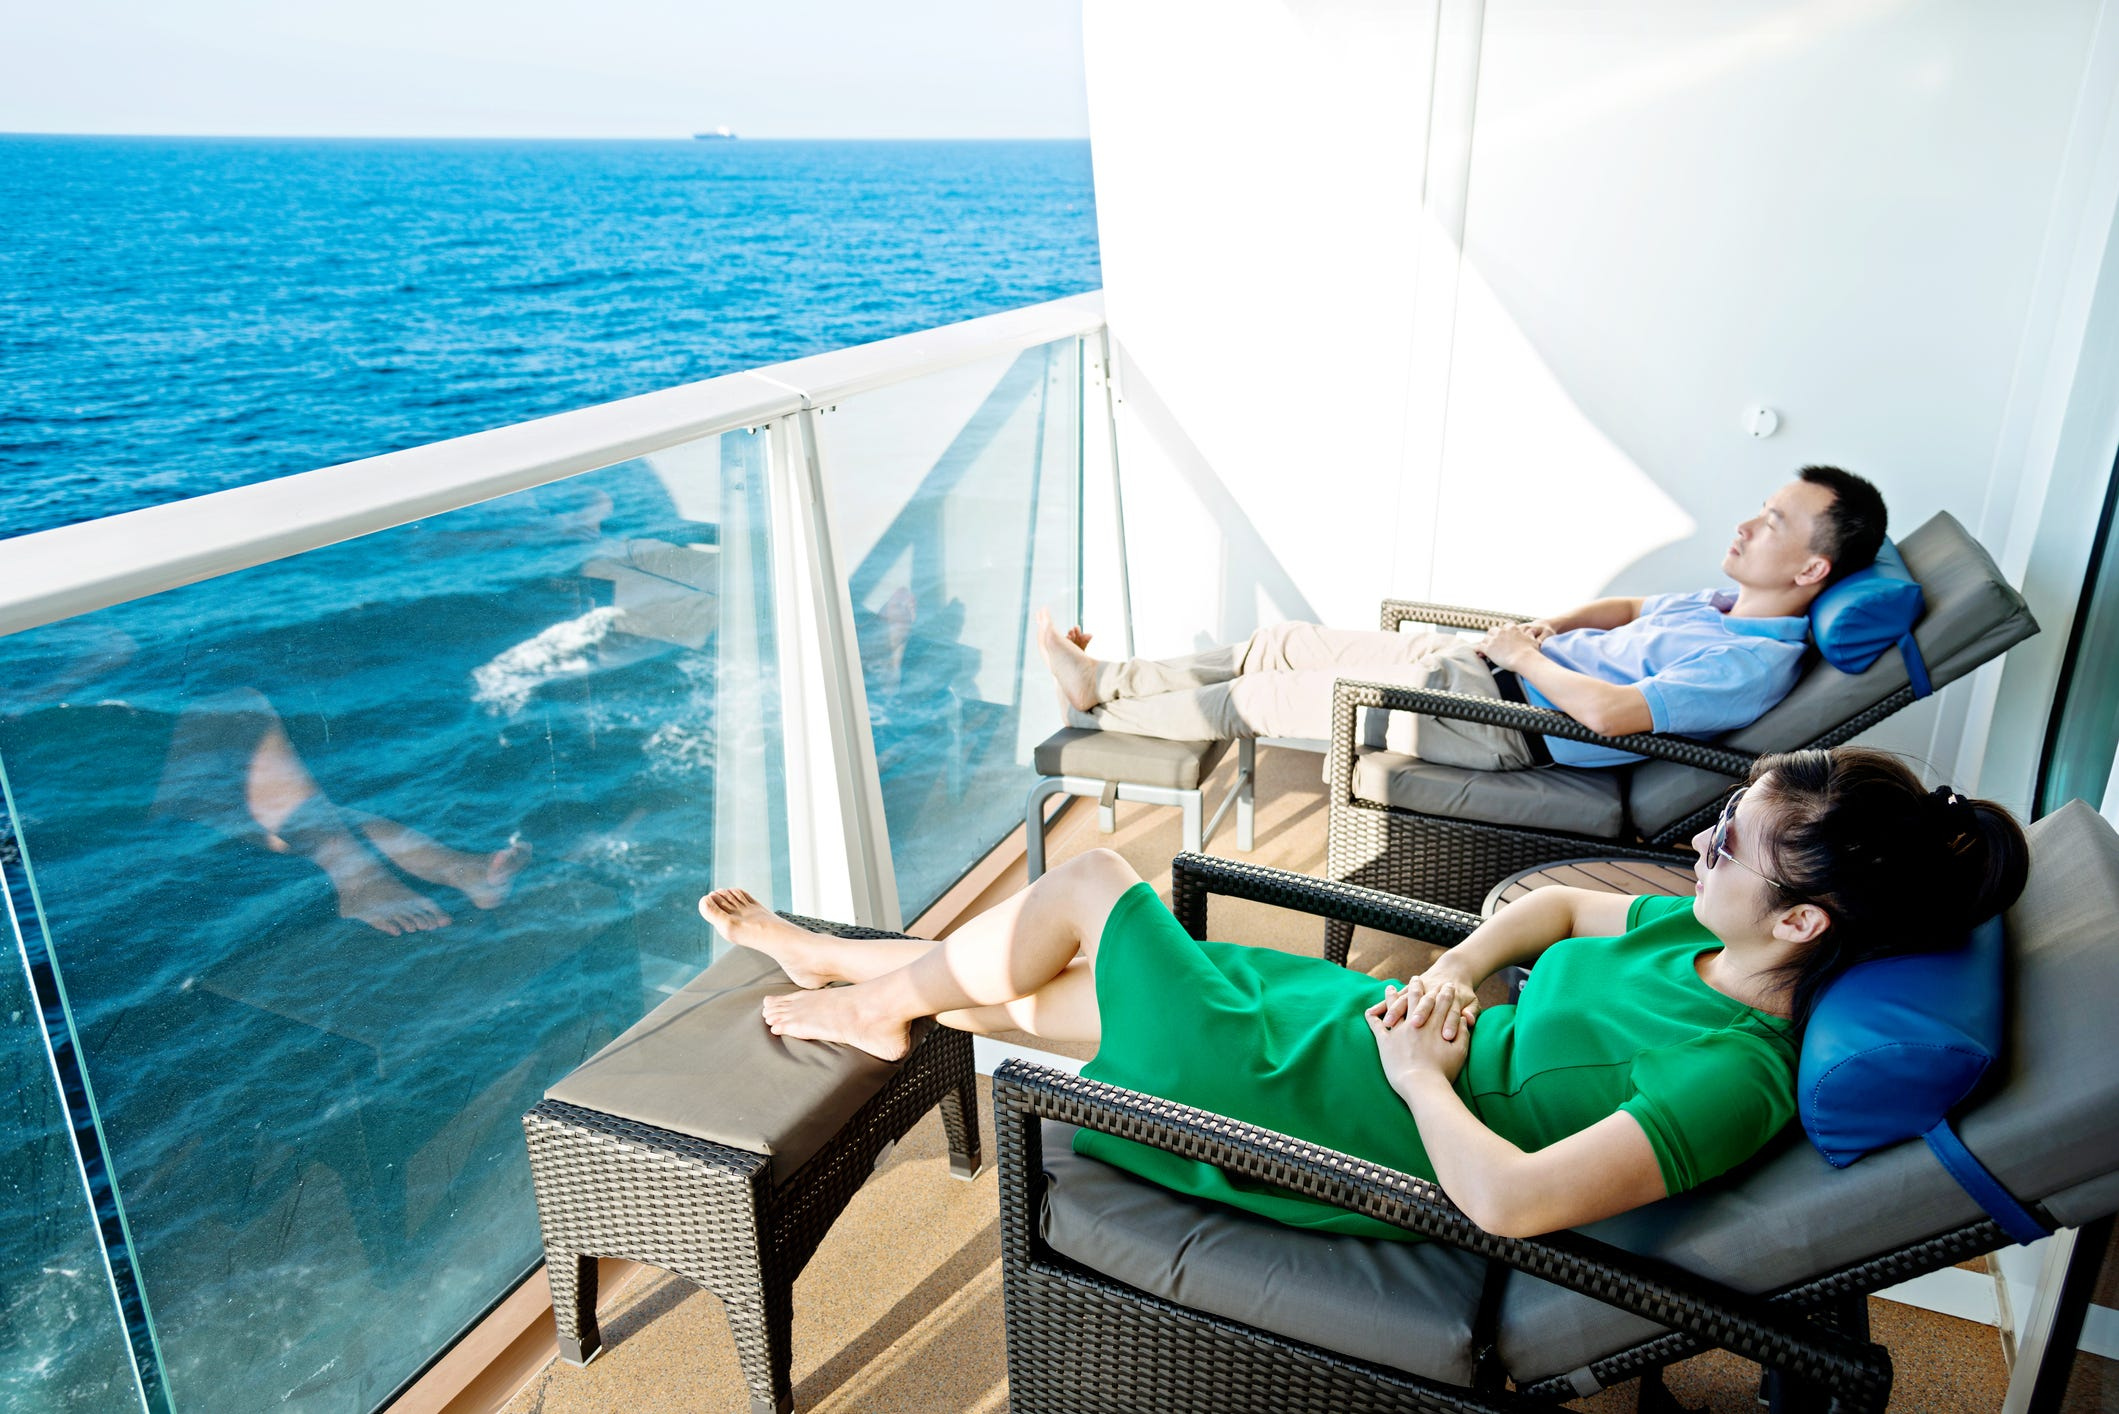 Cruise ships: 7 secret public areas where you can hide away from other passengers